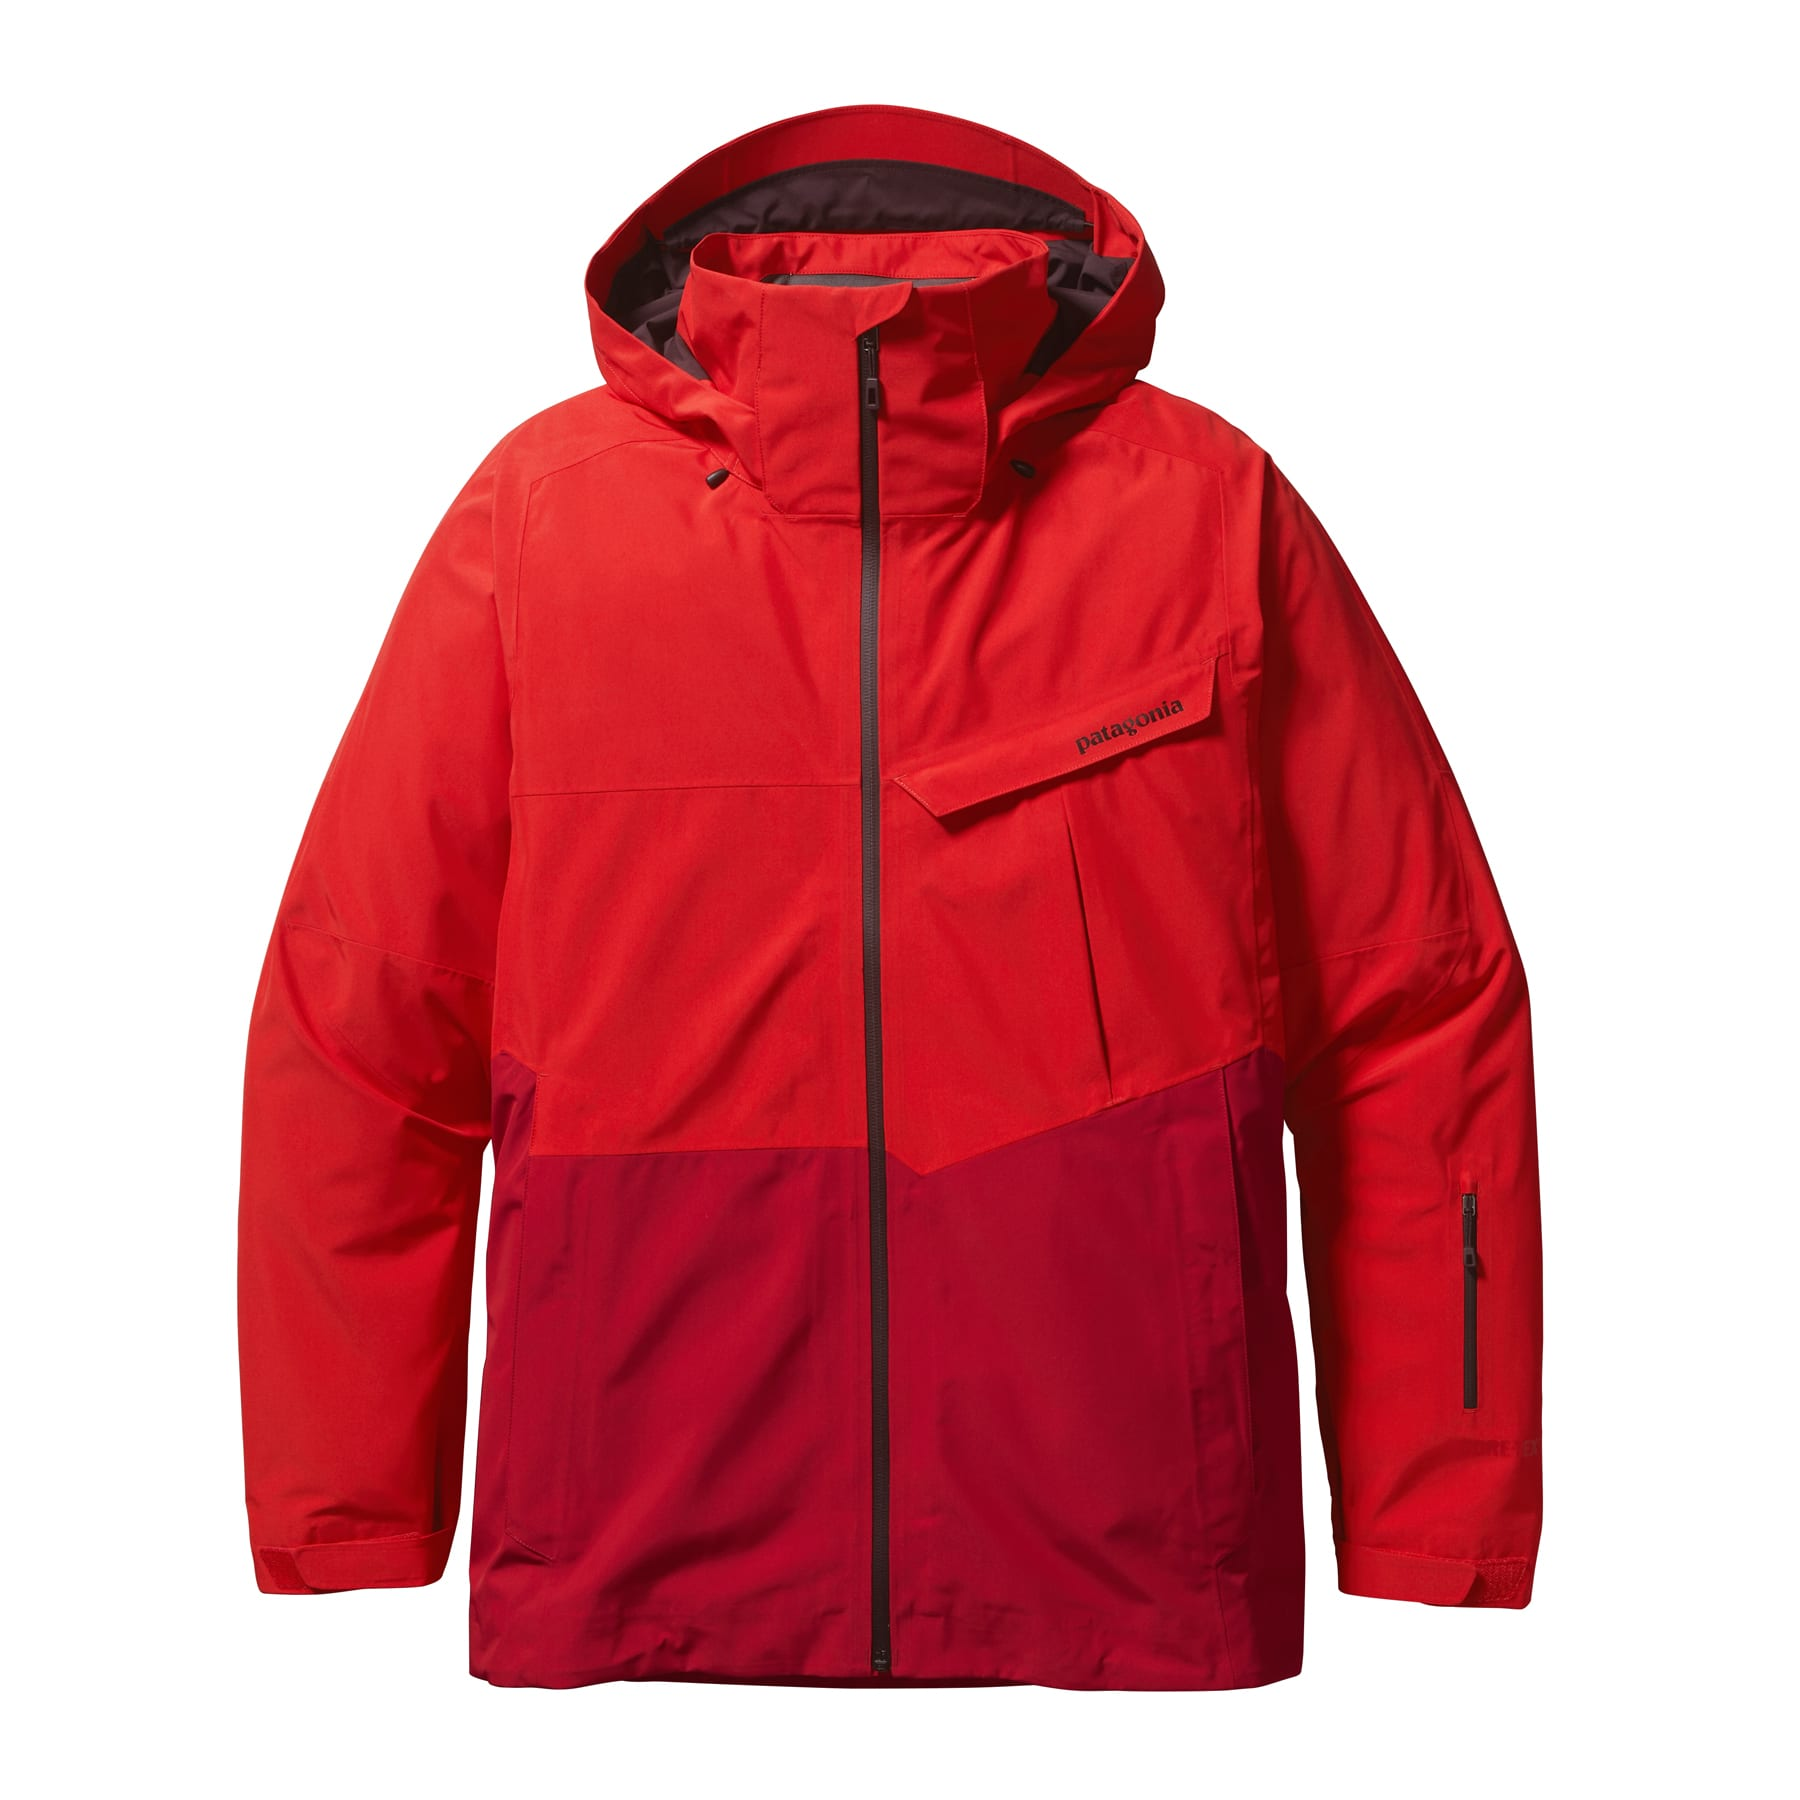 Patagonia Powder Bowl Gore-Tex Ski Jacket - thumbnail 1 8d190074114b